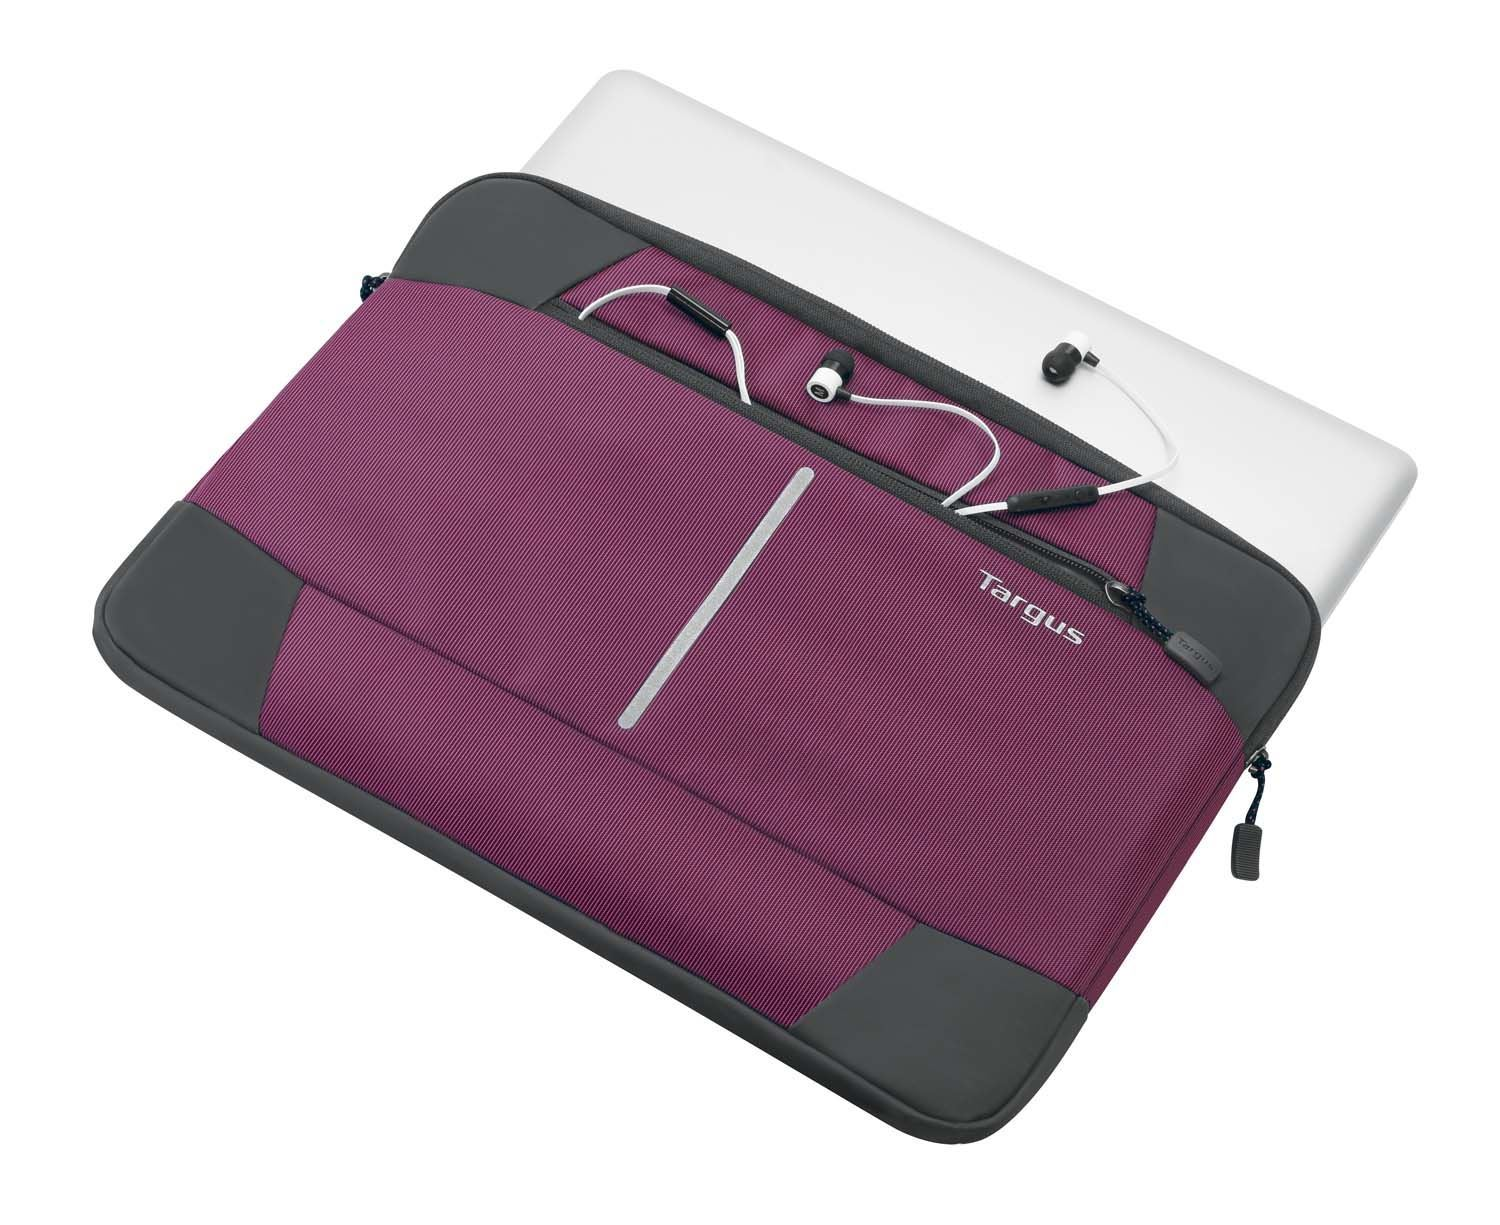 TSS95301AU - 13-14_ Bex II Sleeve - Baton Rouge Top with Macbook